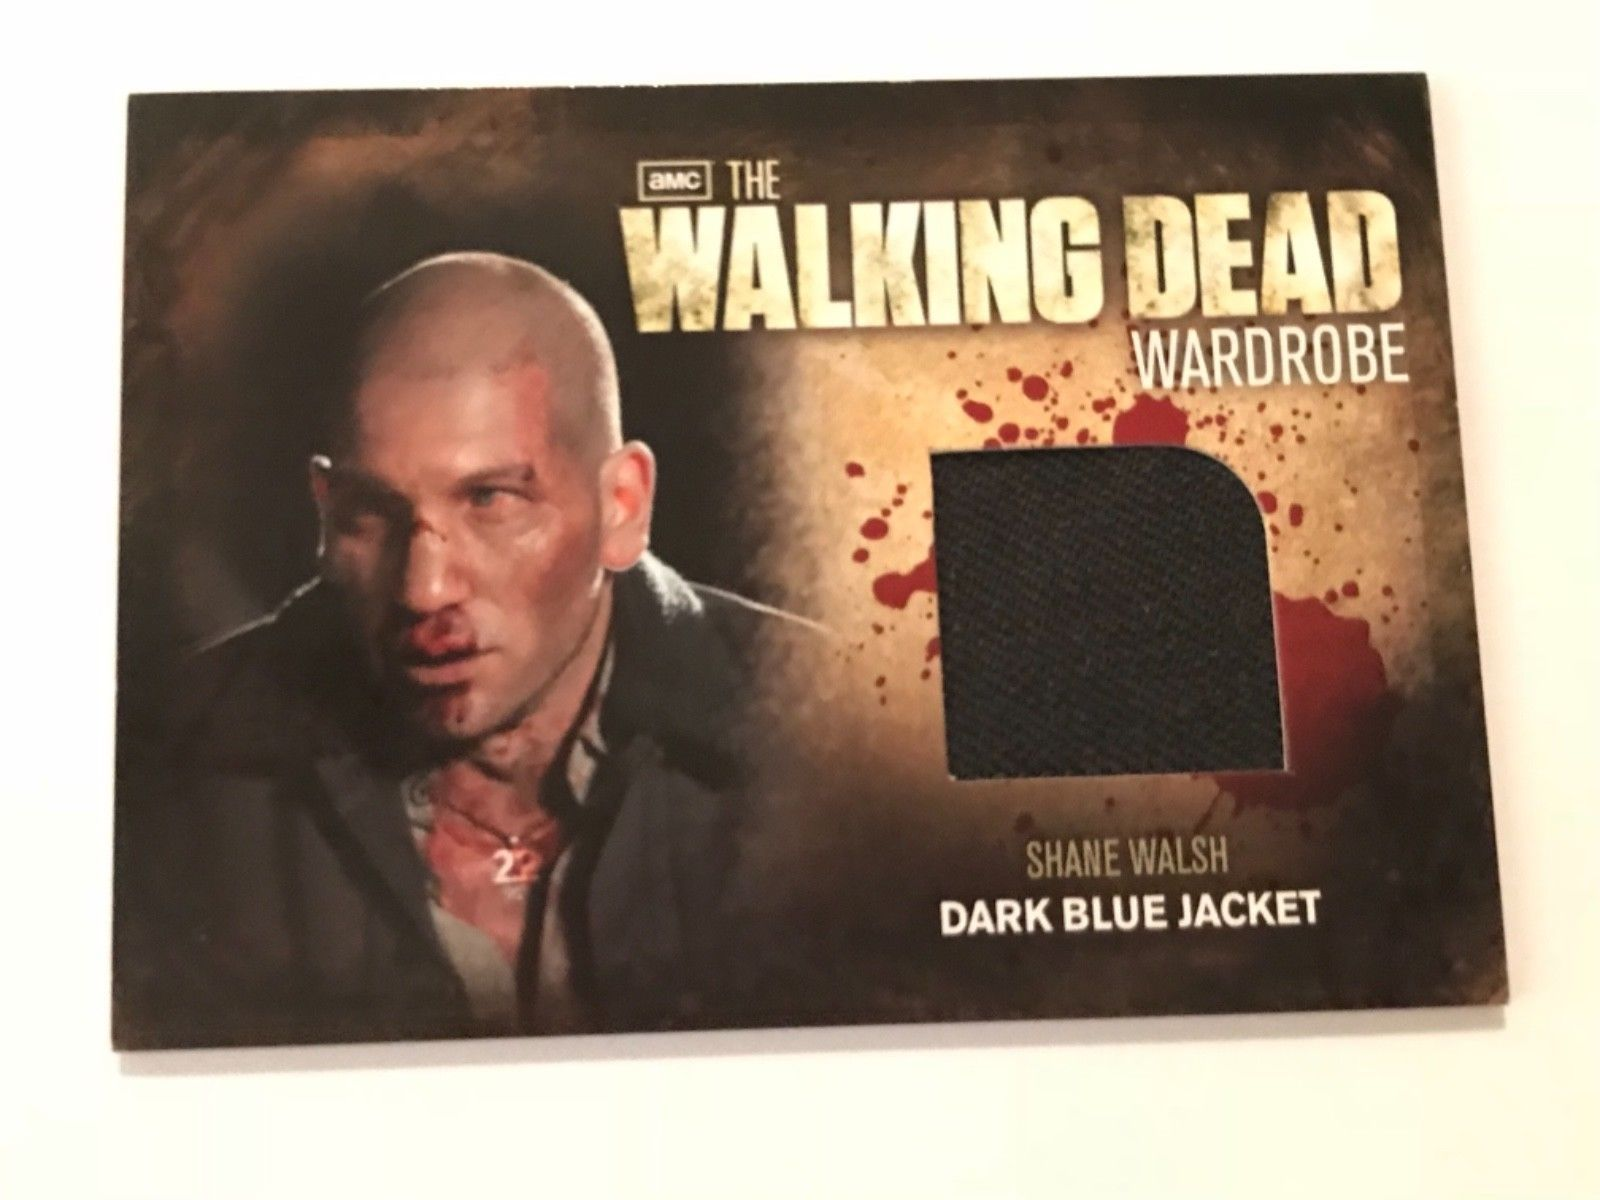 Primary image for Cryptozoic Walking Dead Season 2 Wardrobe Jon Bernthal as Shane Walsh M3